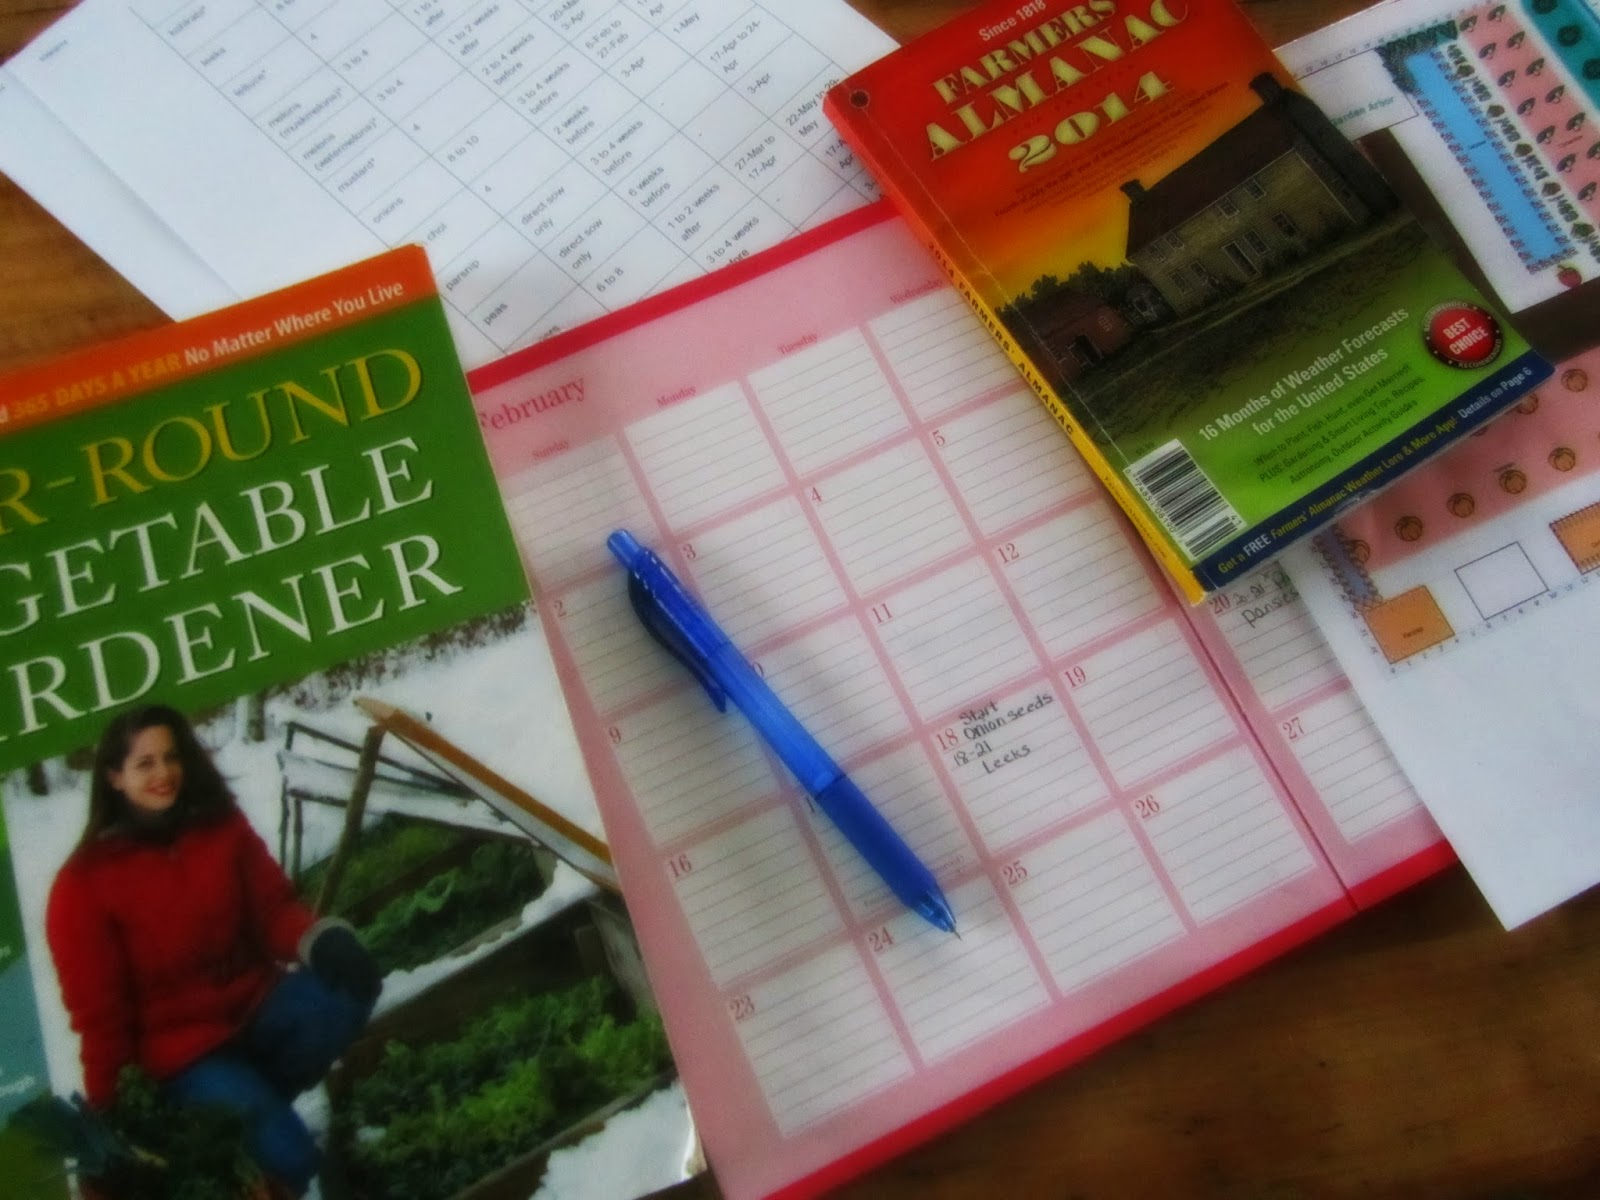 Books, day planner, and farmers Almanac to plan out our 2014 garden